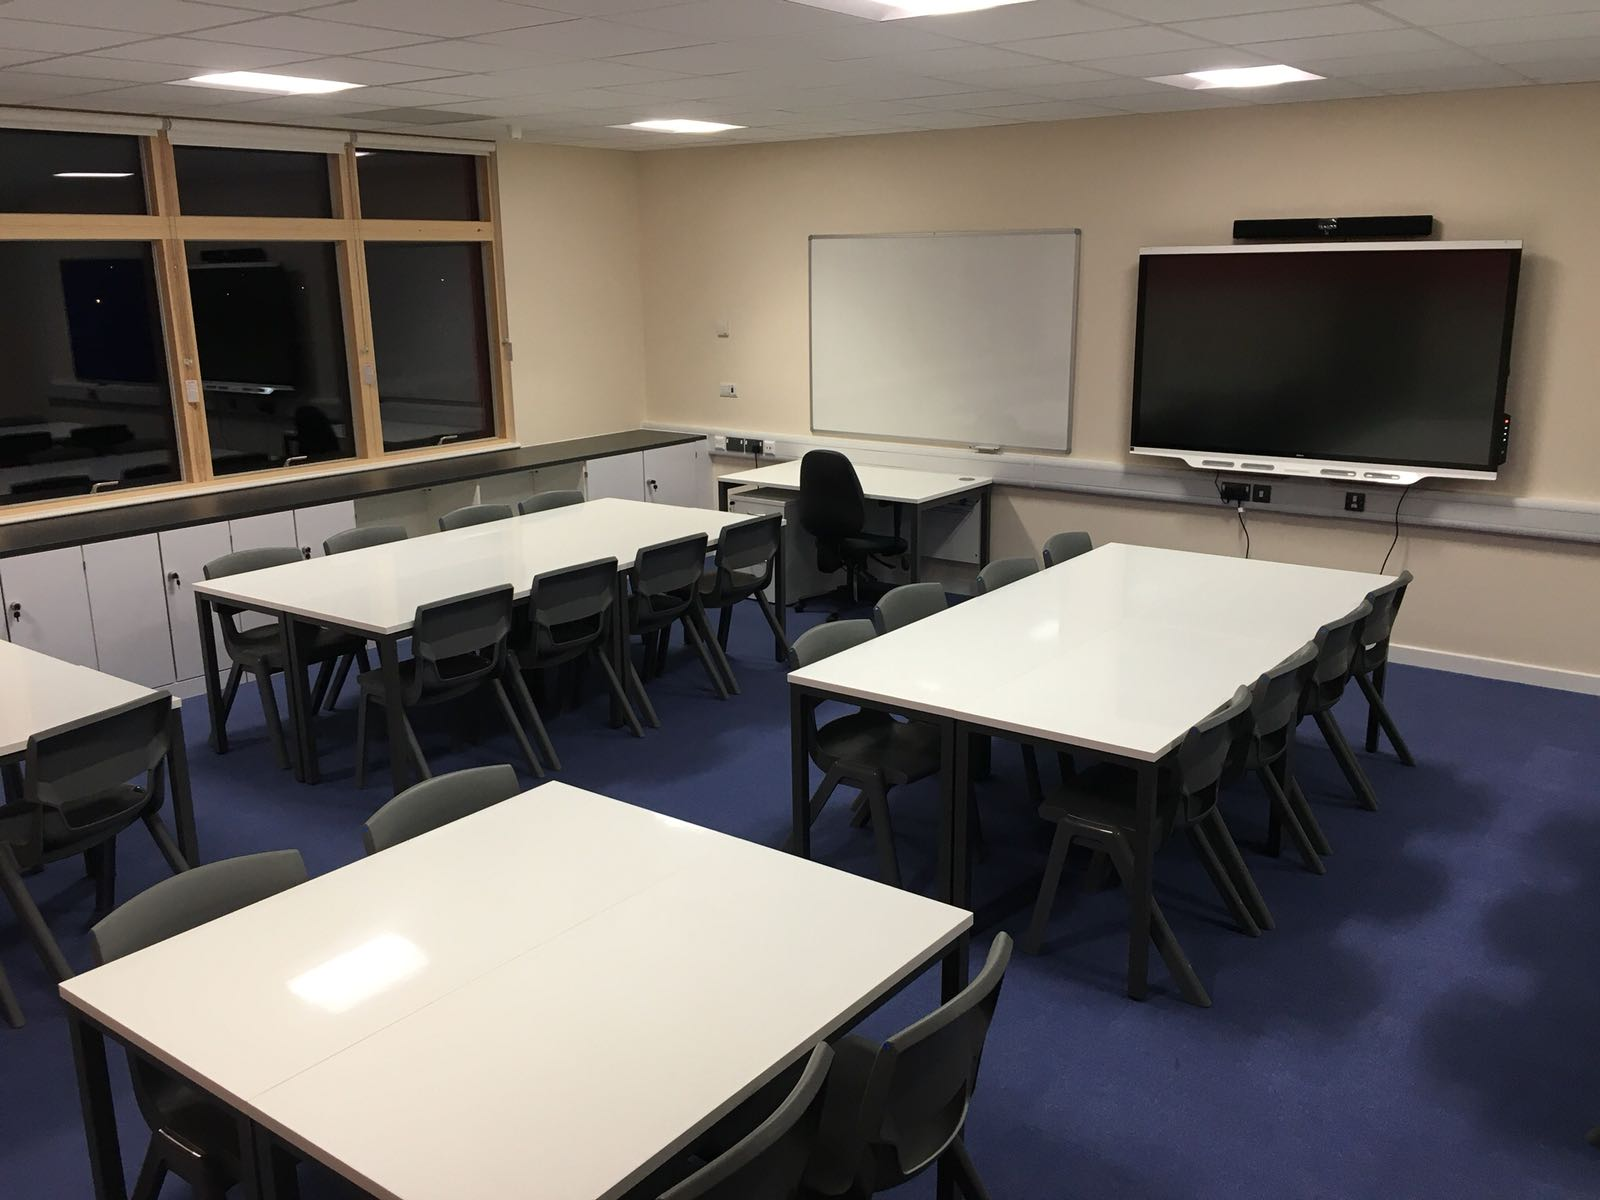 Classroom Refurb Dry-wipe table tops